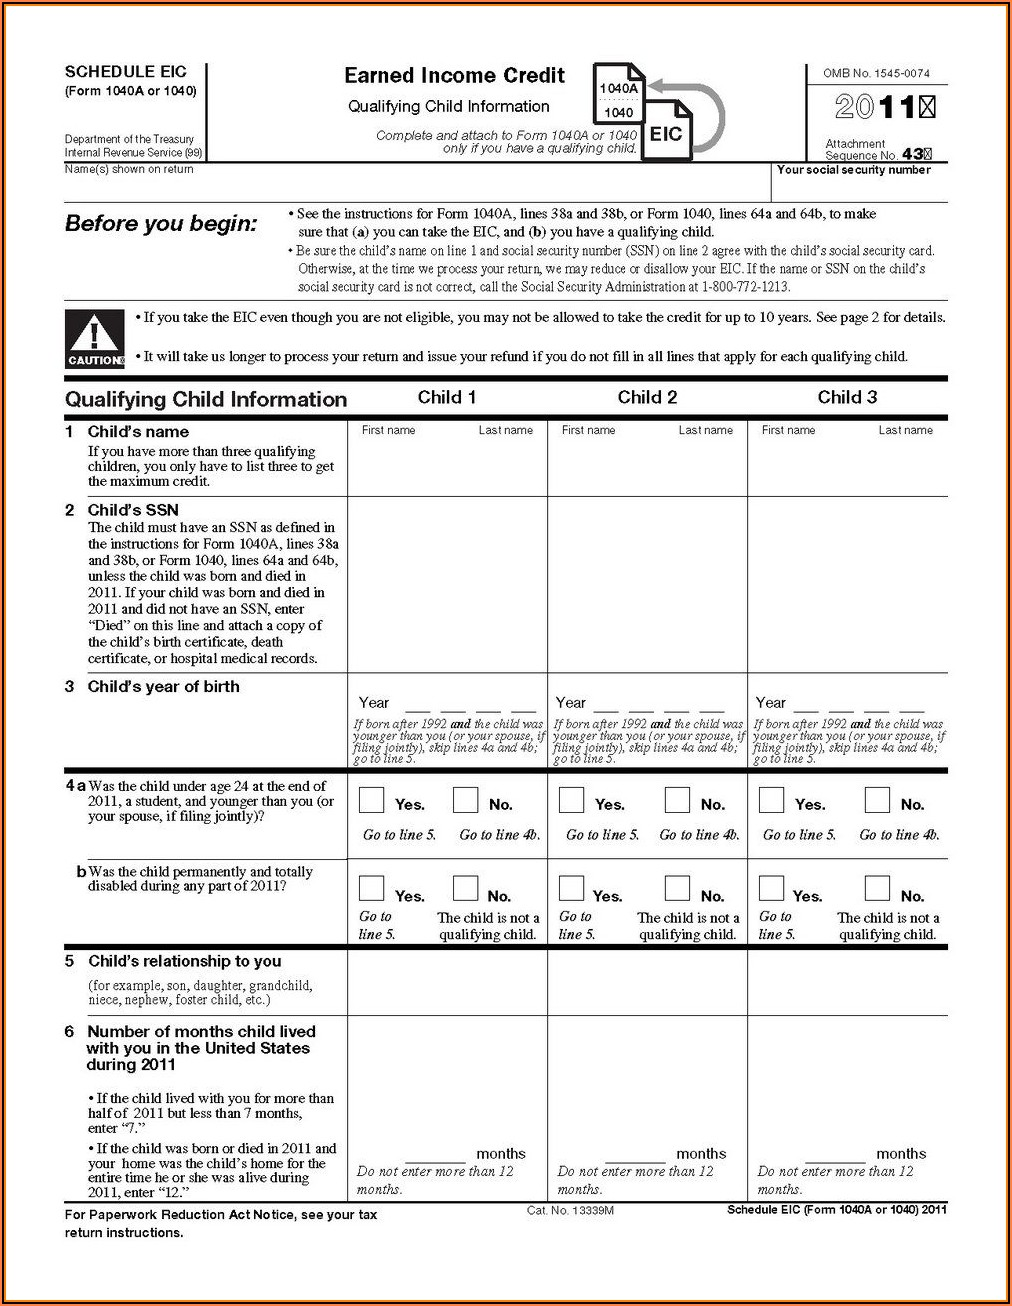 2014 Irs Form 1040a